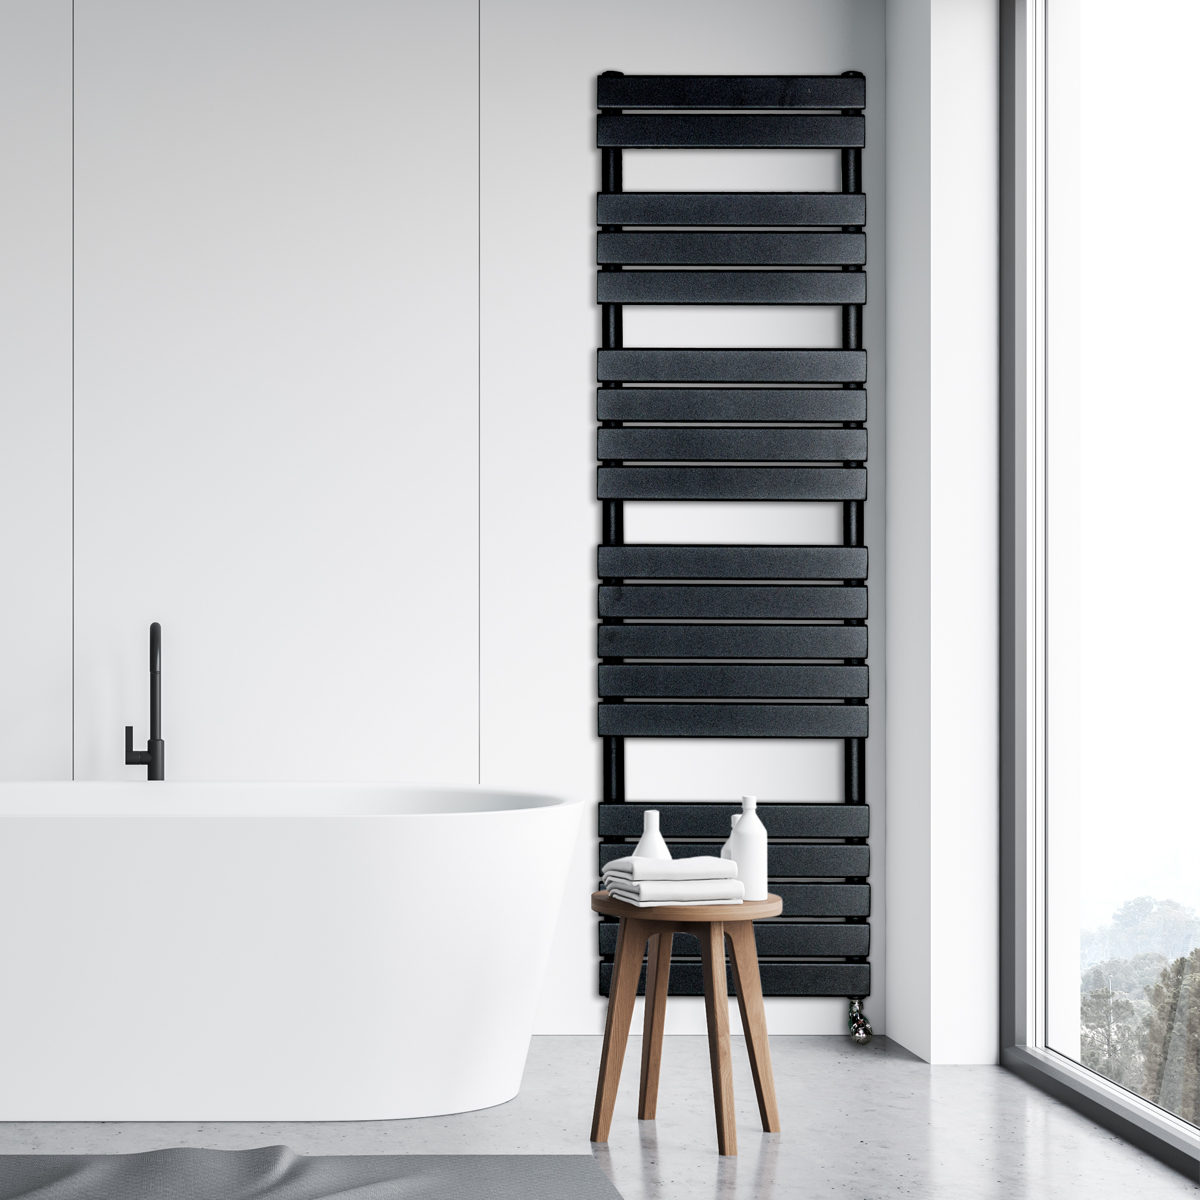 Adige Designer Towel Radiator Black Large RAD-AF-FR01006B